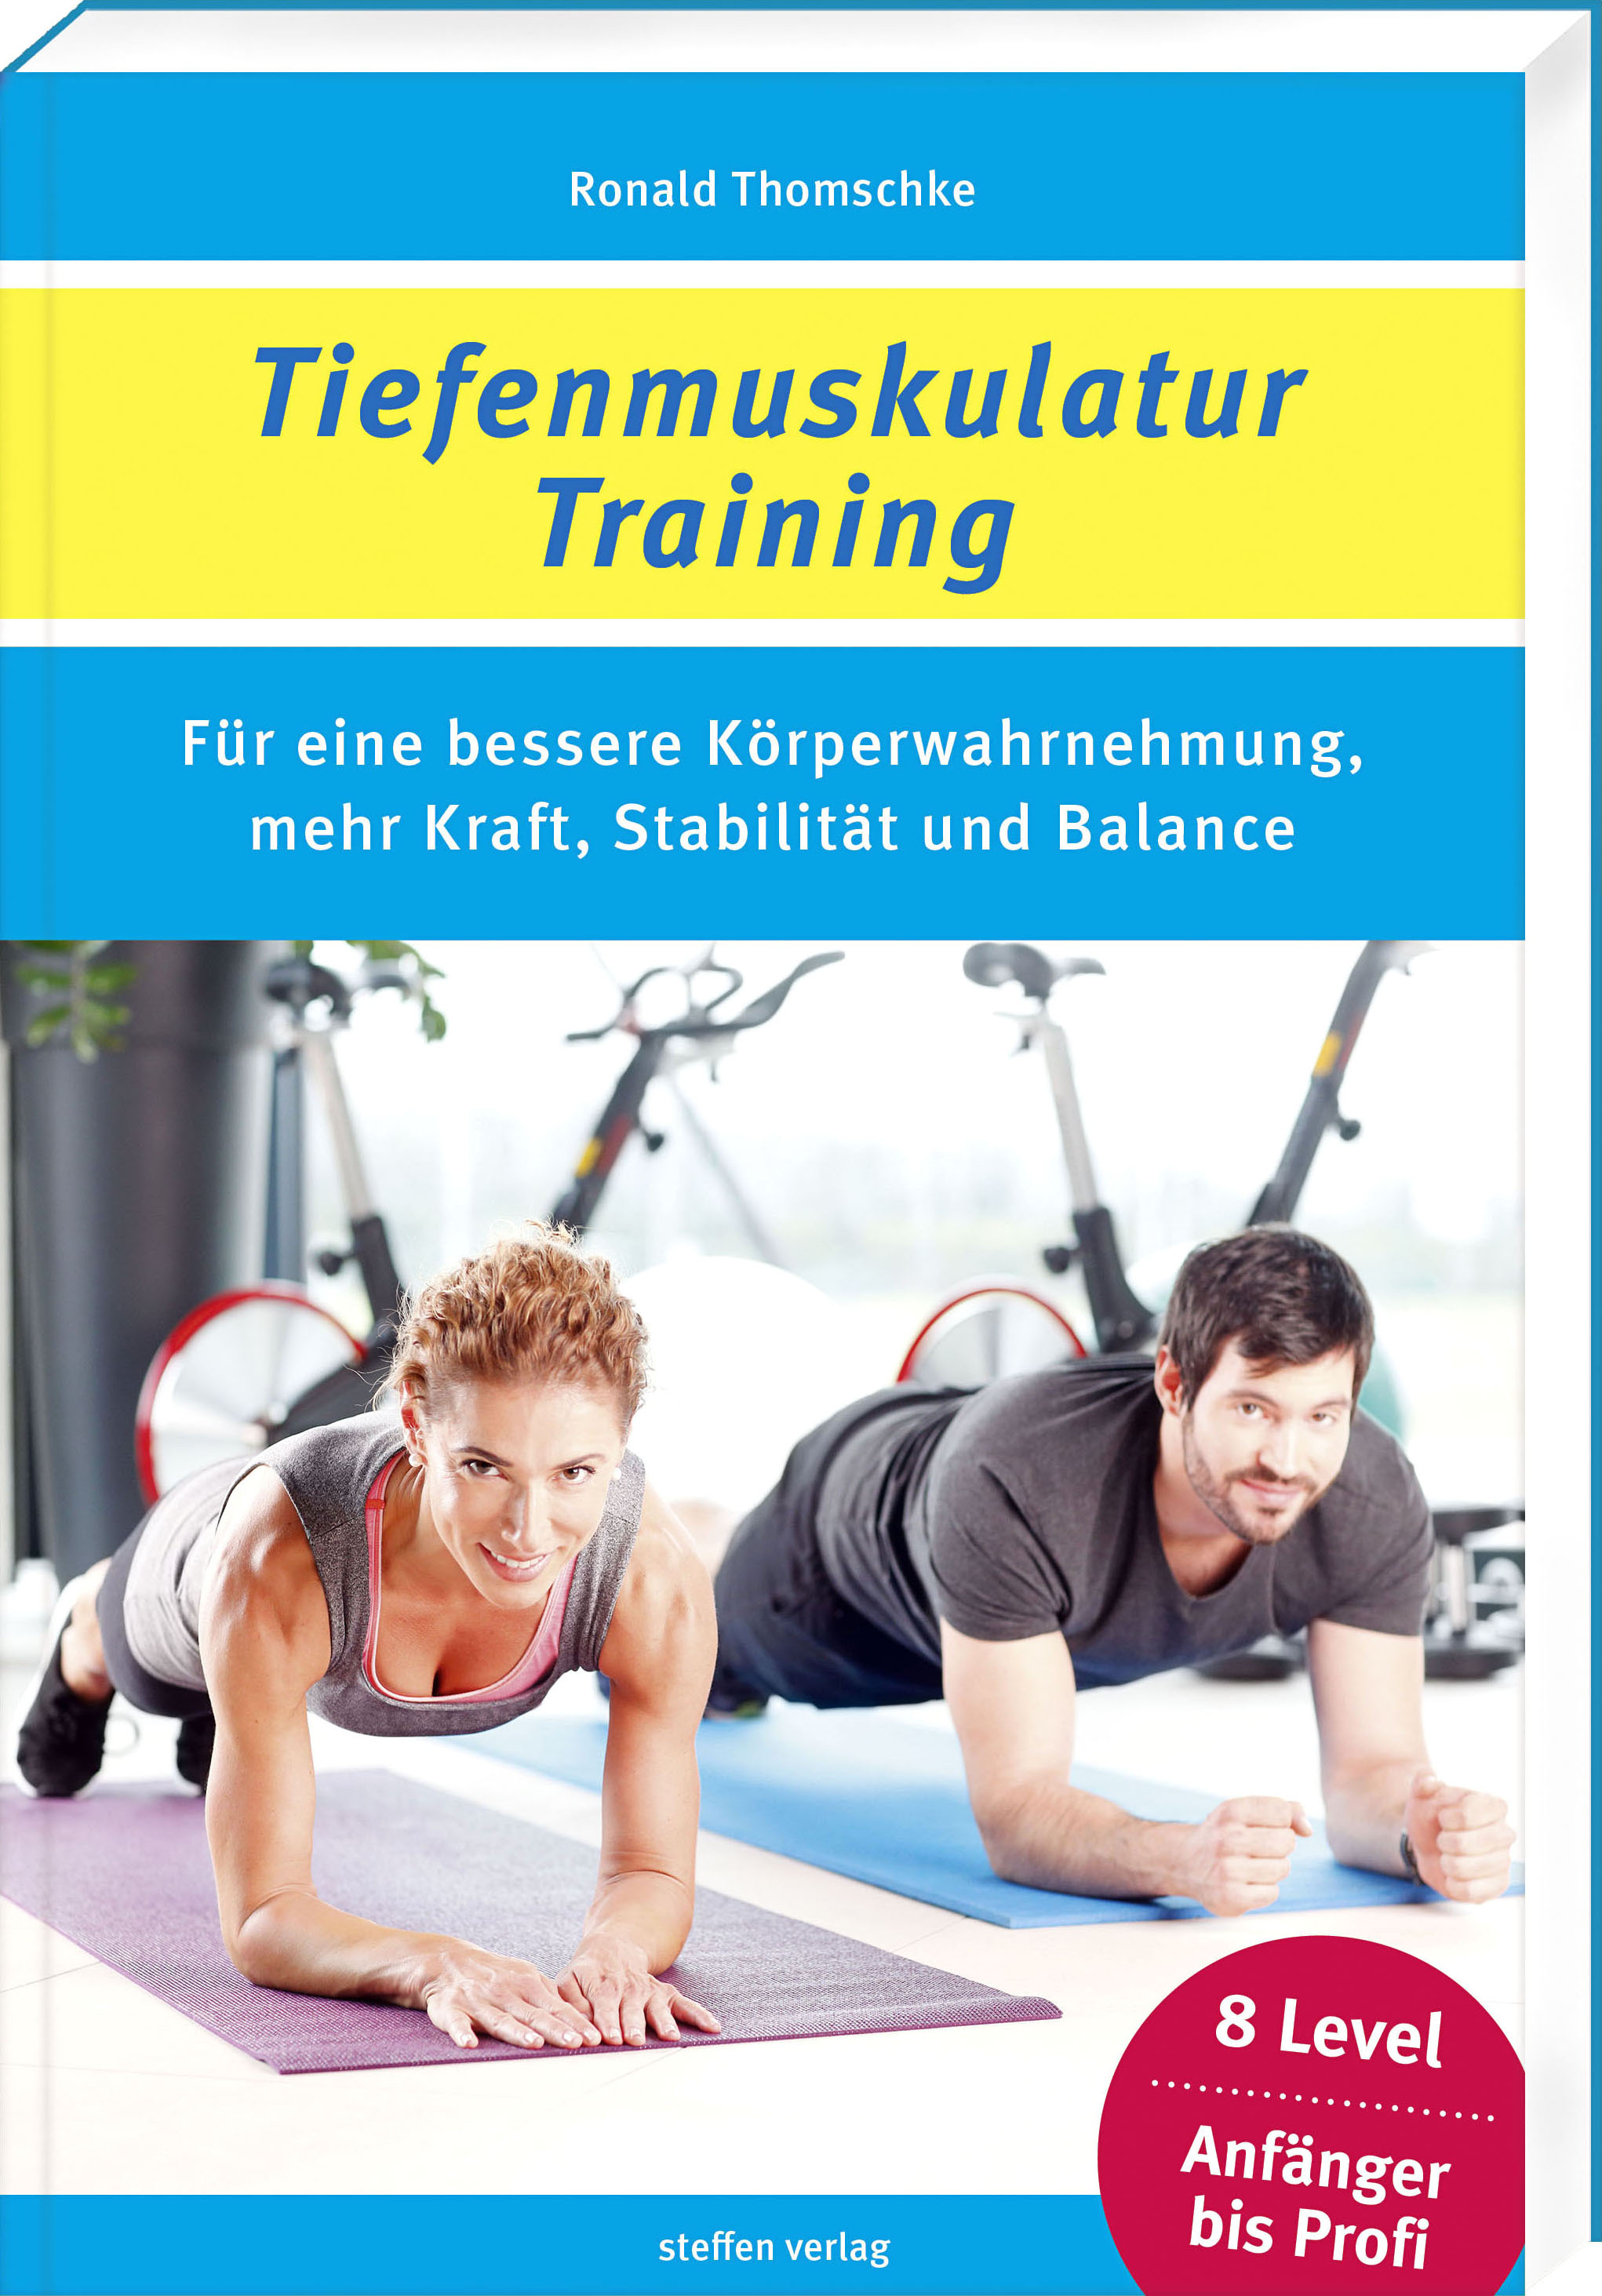 Tiefenmuskulatur-Training, Ronald Thomschke